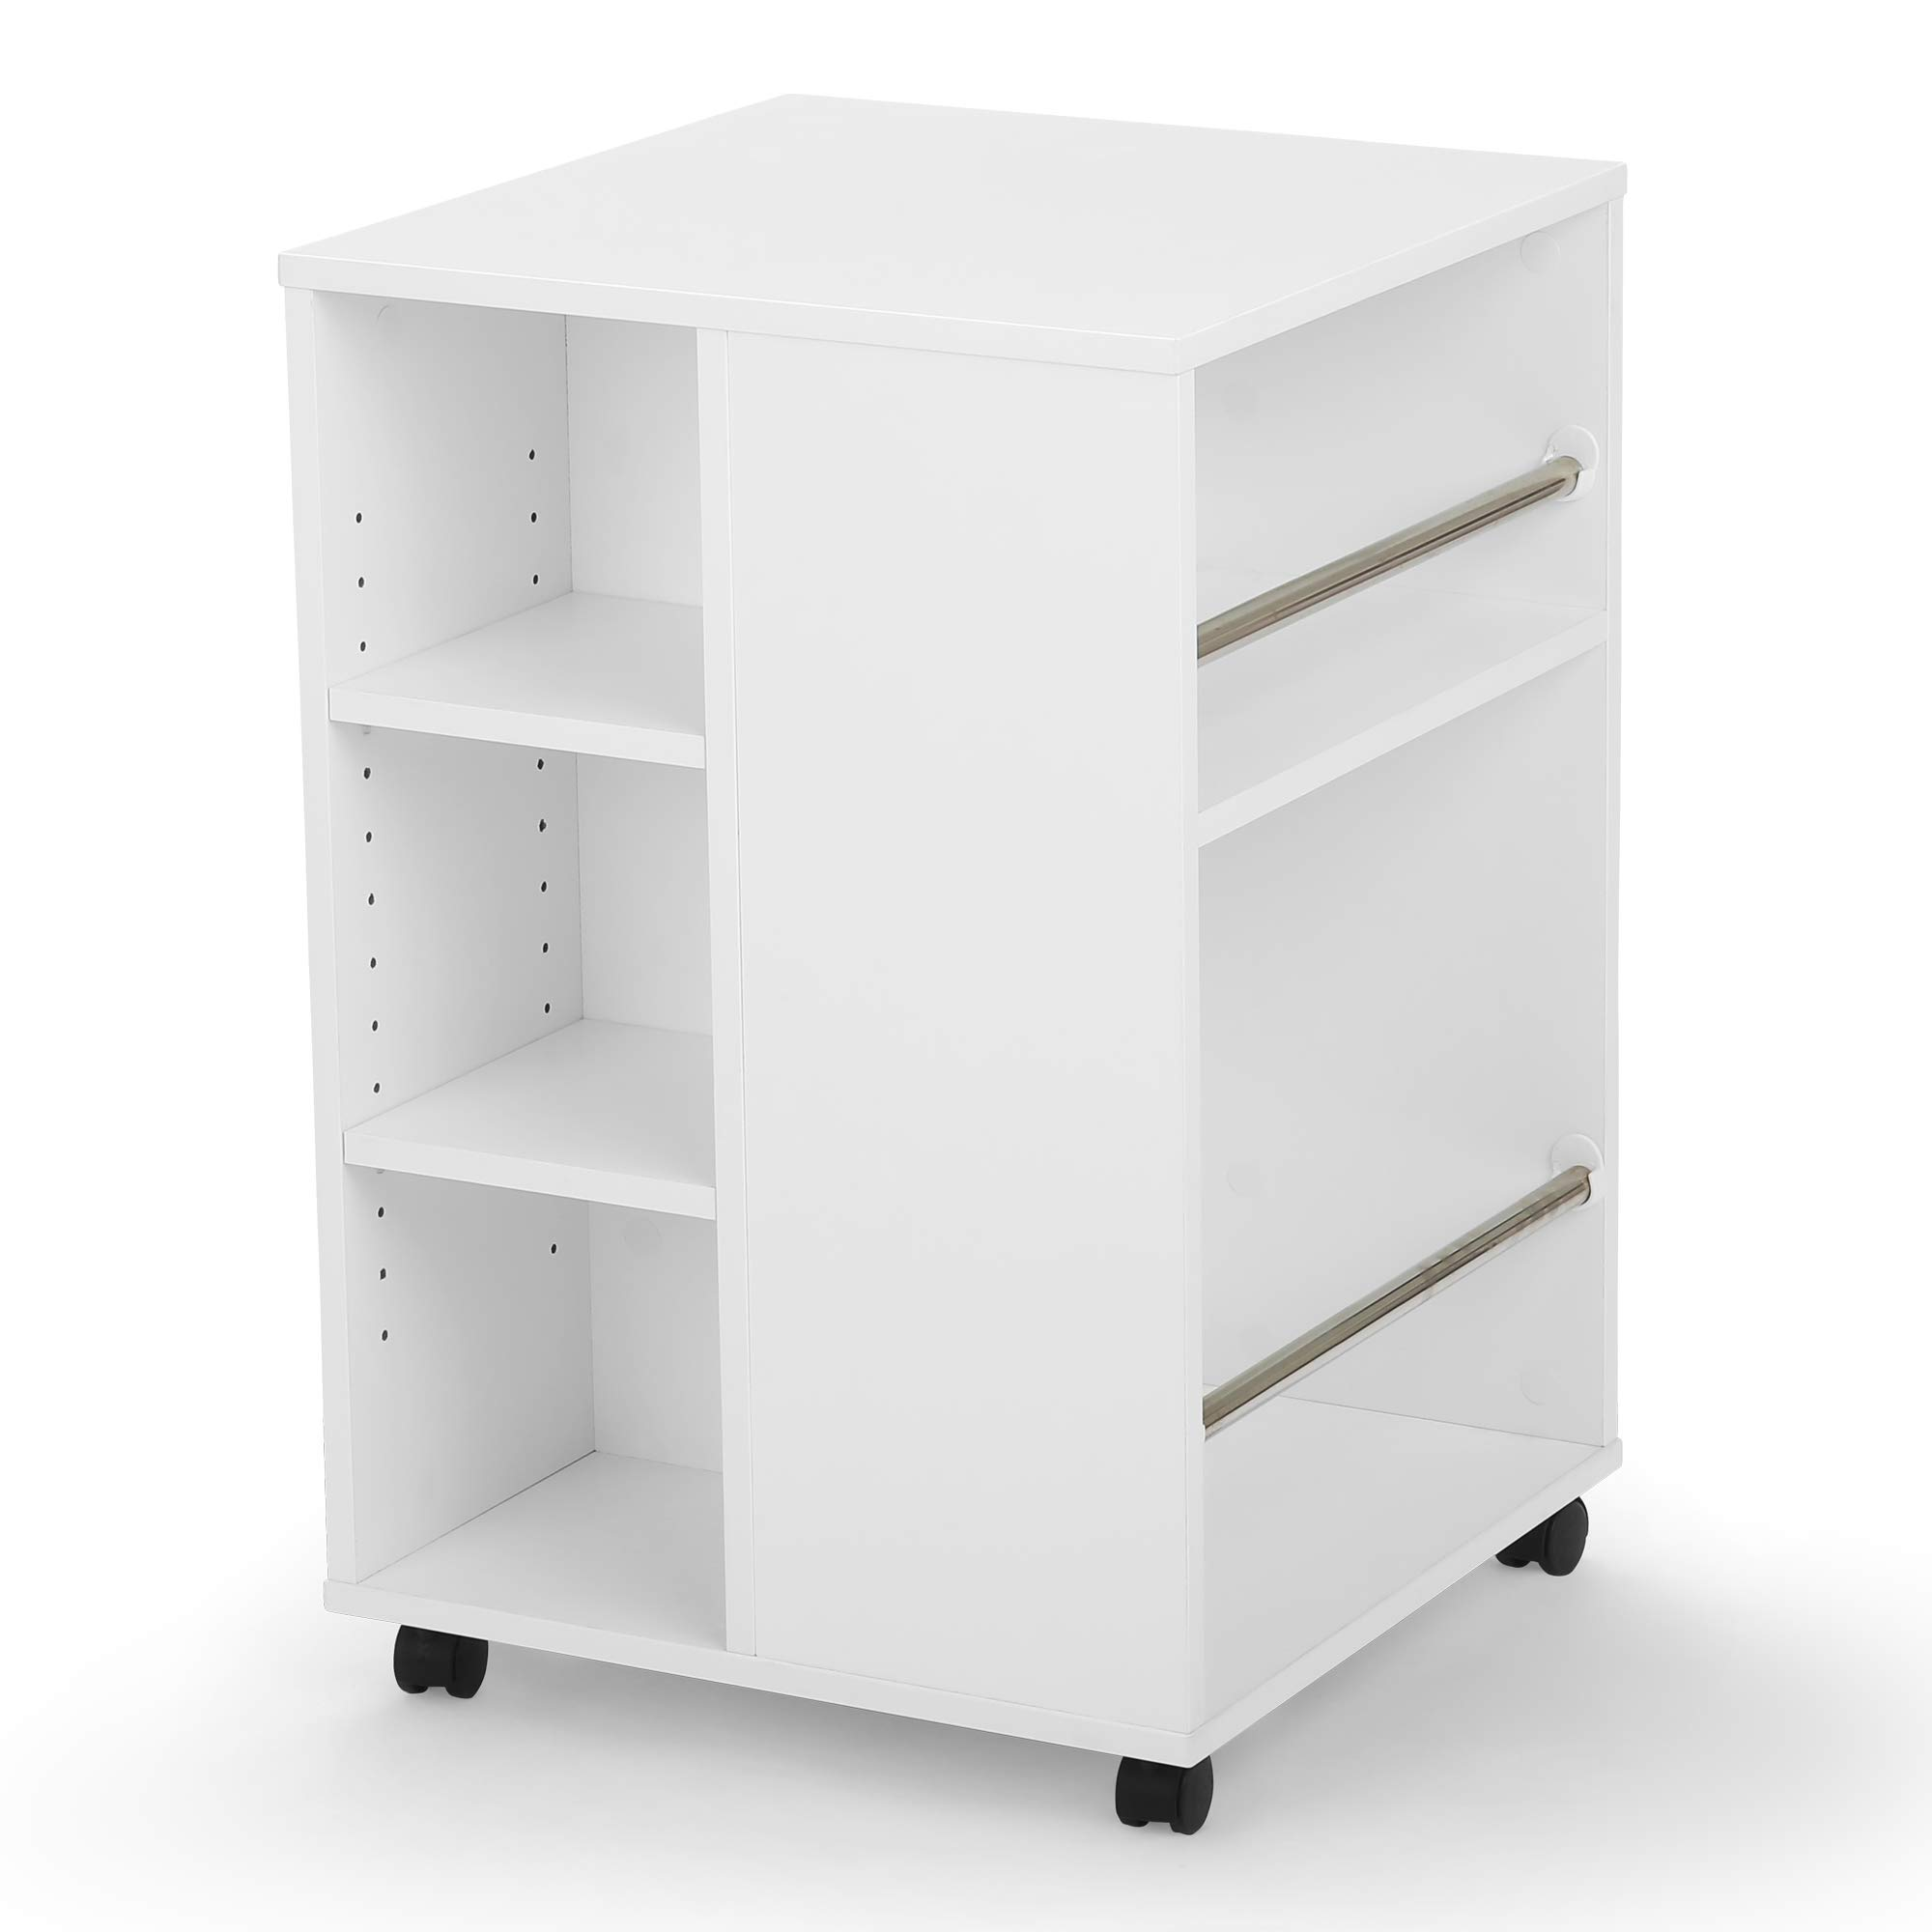 Arrow 81100 Portable 4 Sided Thread, Ribbon and Craft Storage Organization Cube, White Finish by Arrow Sewing Cabinets